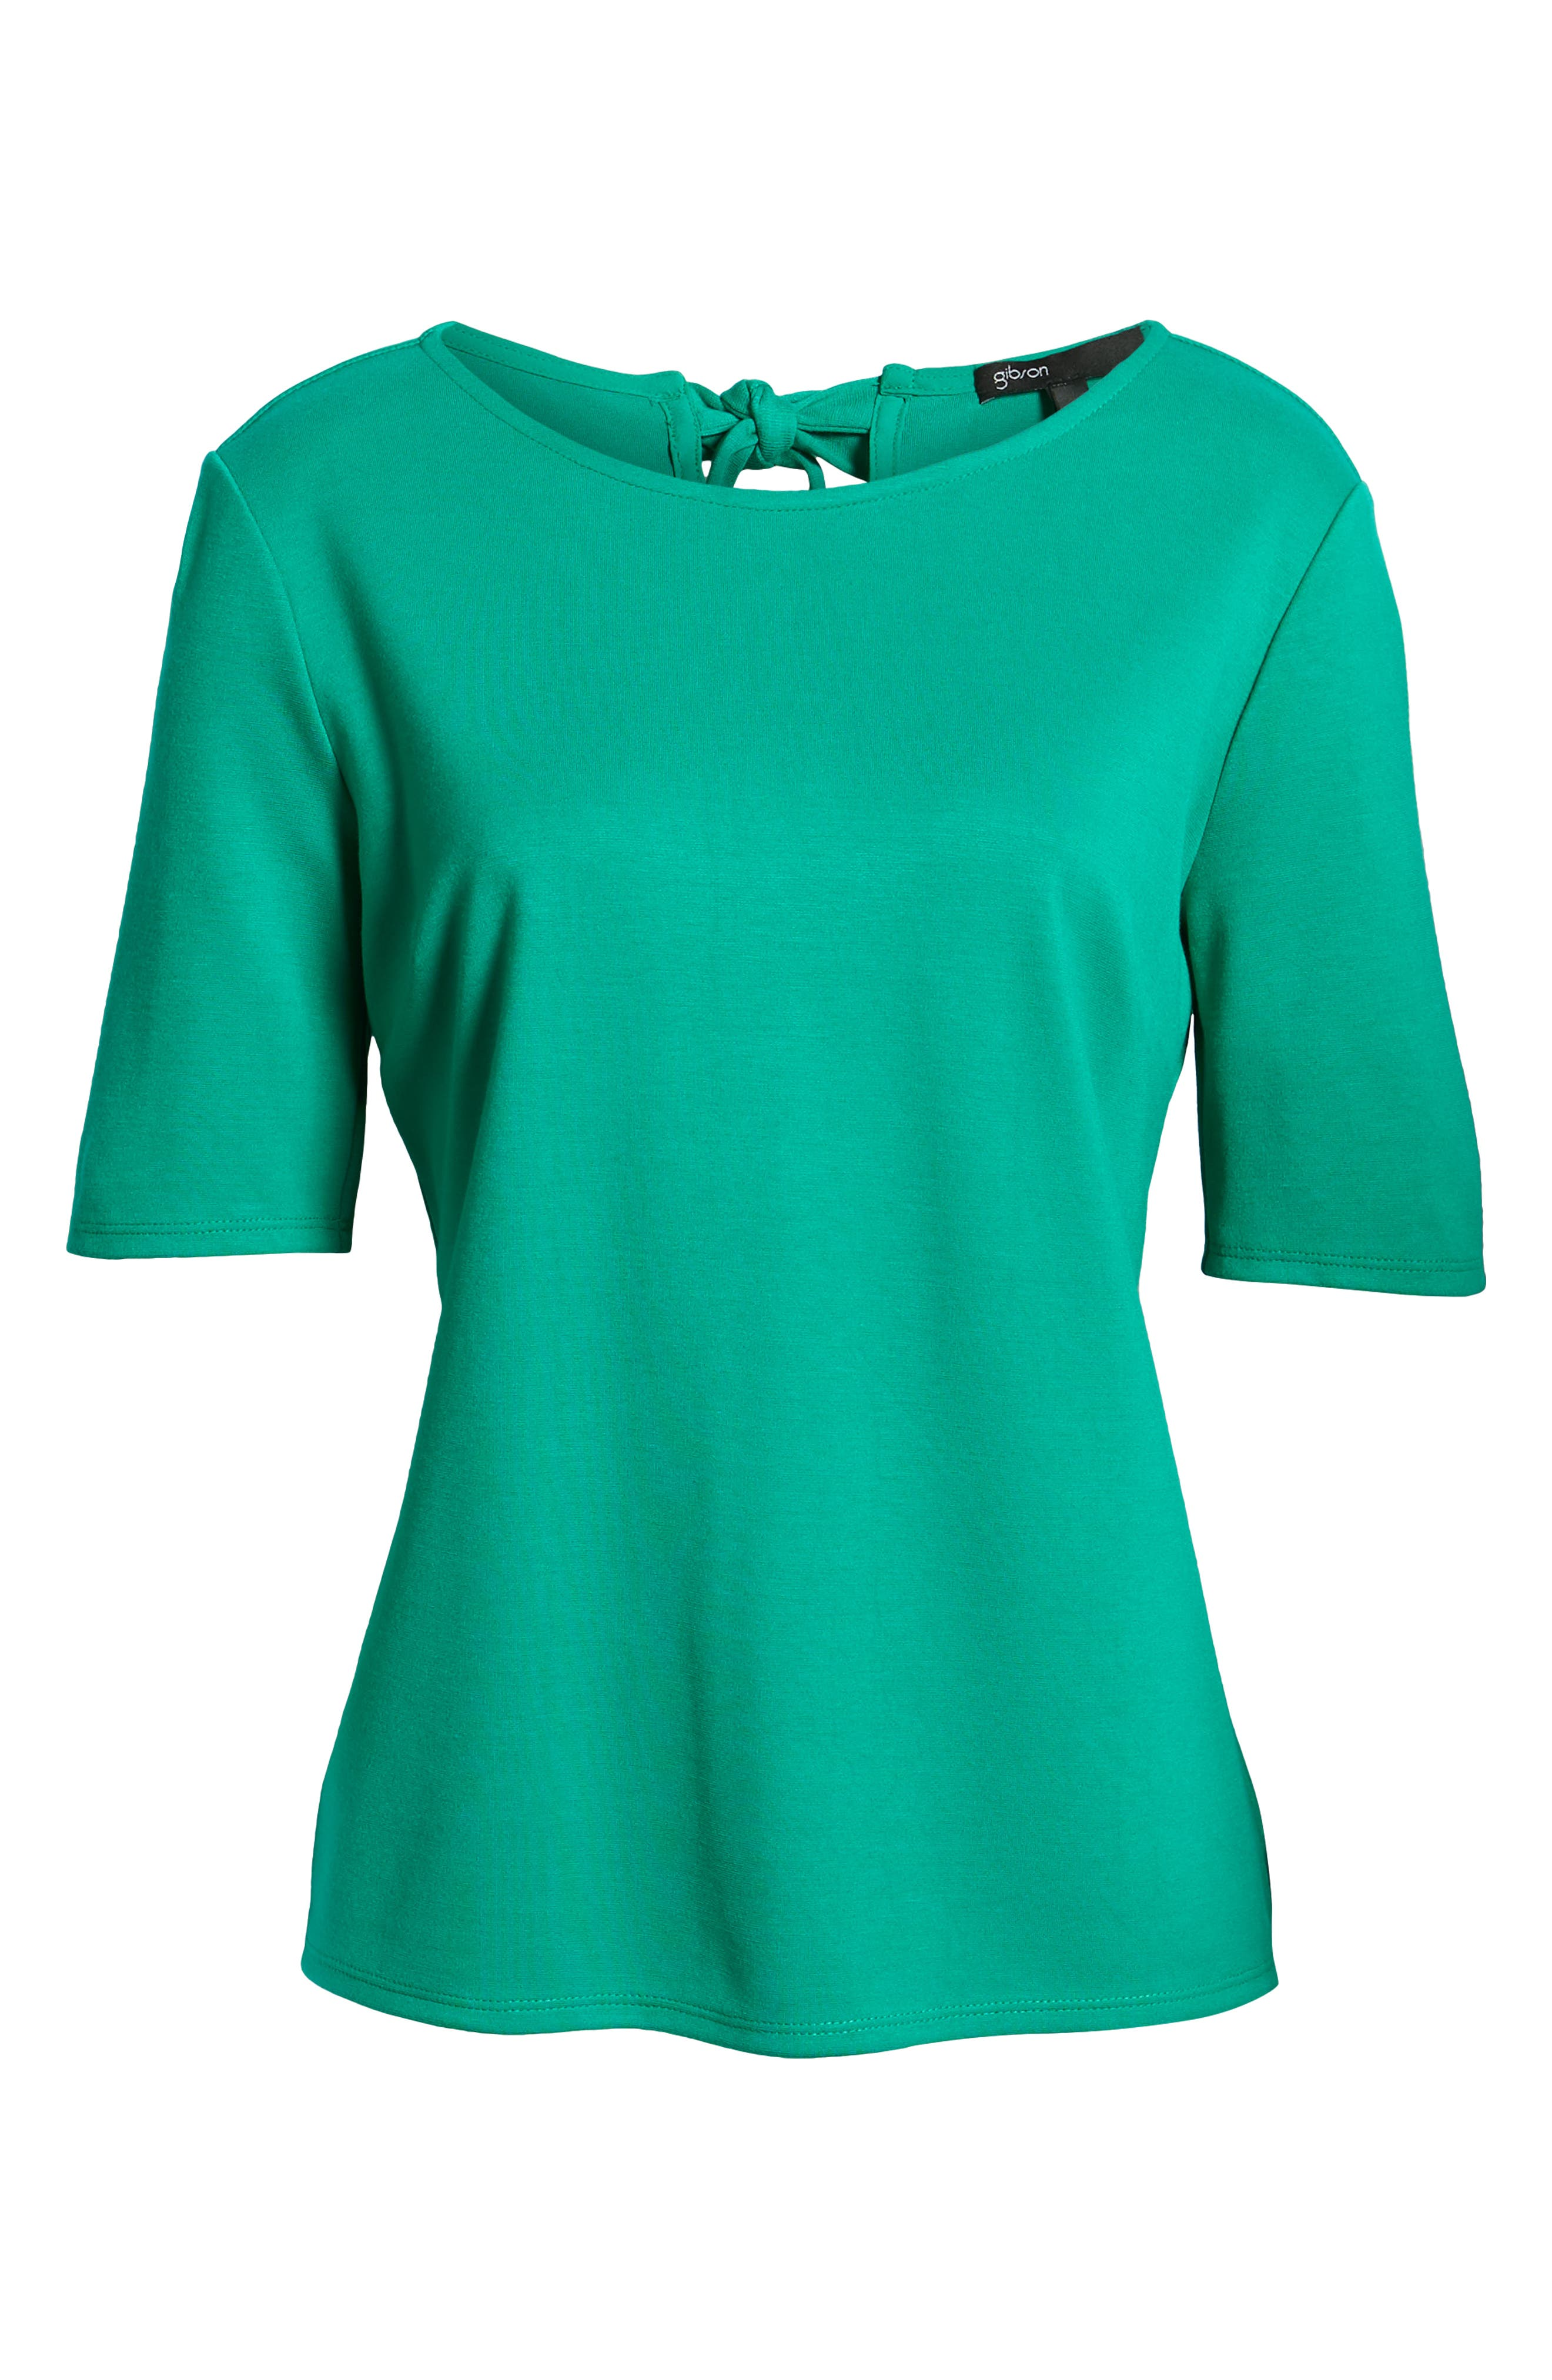 GIBSON,                             x International Women's Day Thamarr Keyhole Tie Back Ponte Top,                             Alternate thumbnail 6, color,                             GREEN